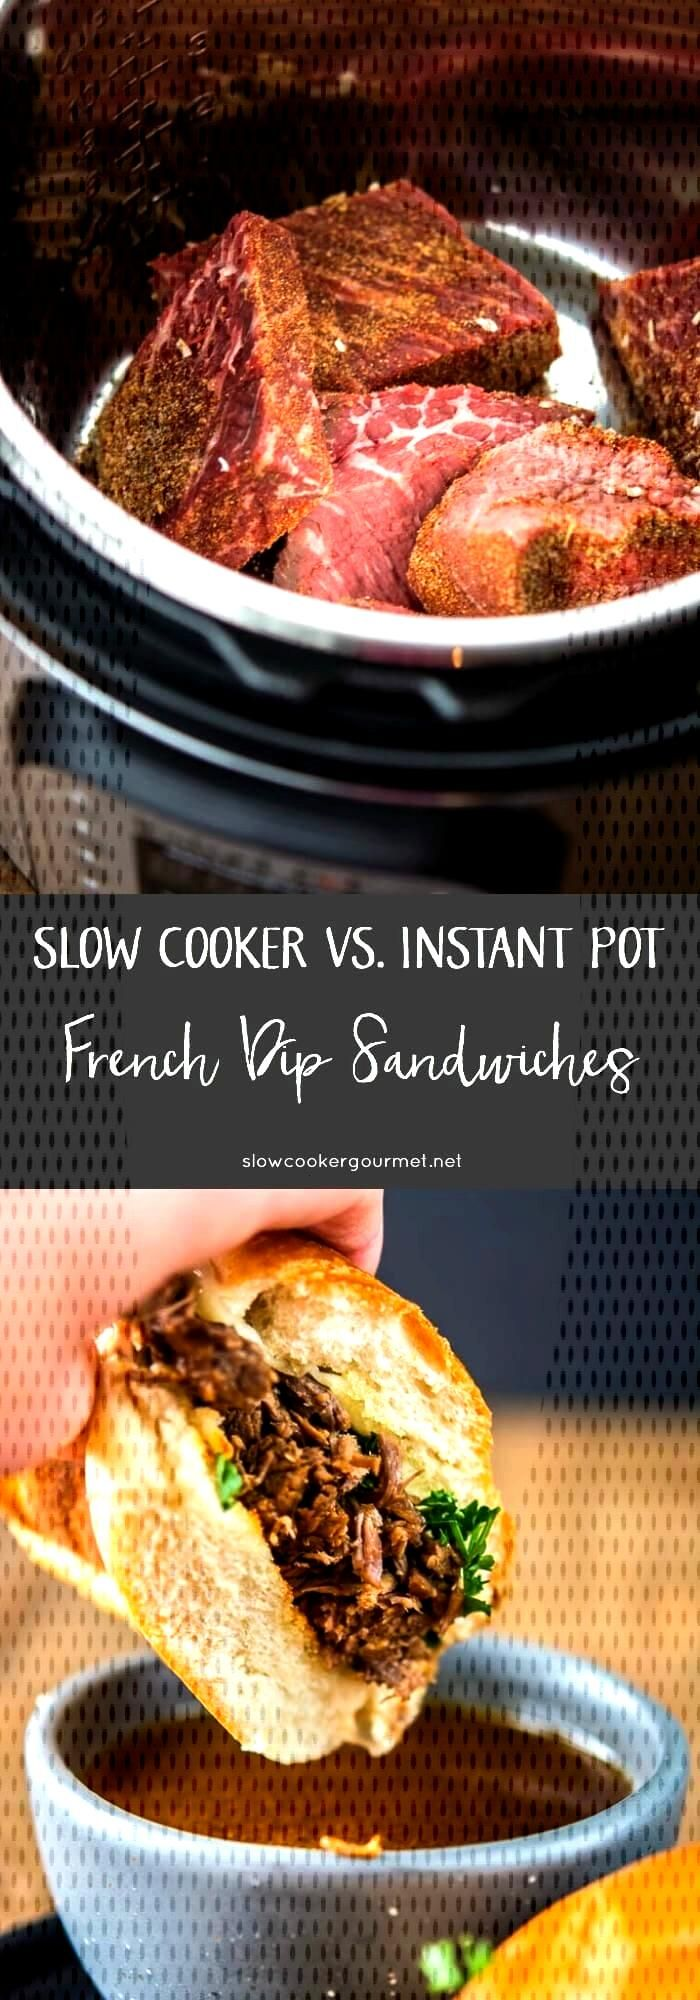 Pressure Cooker French Dip Sandwiches vs. Slow Cooker French Dips -